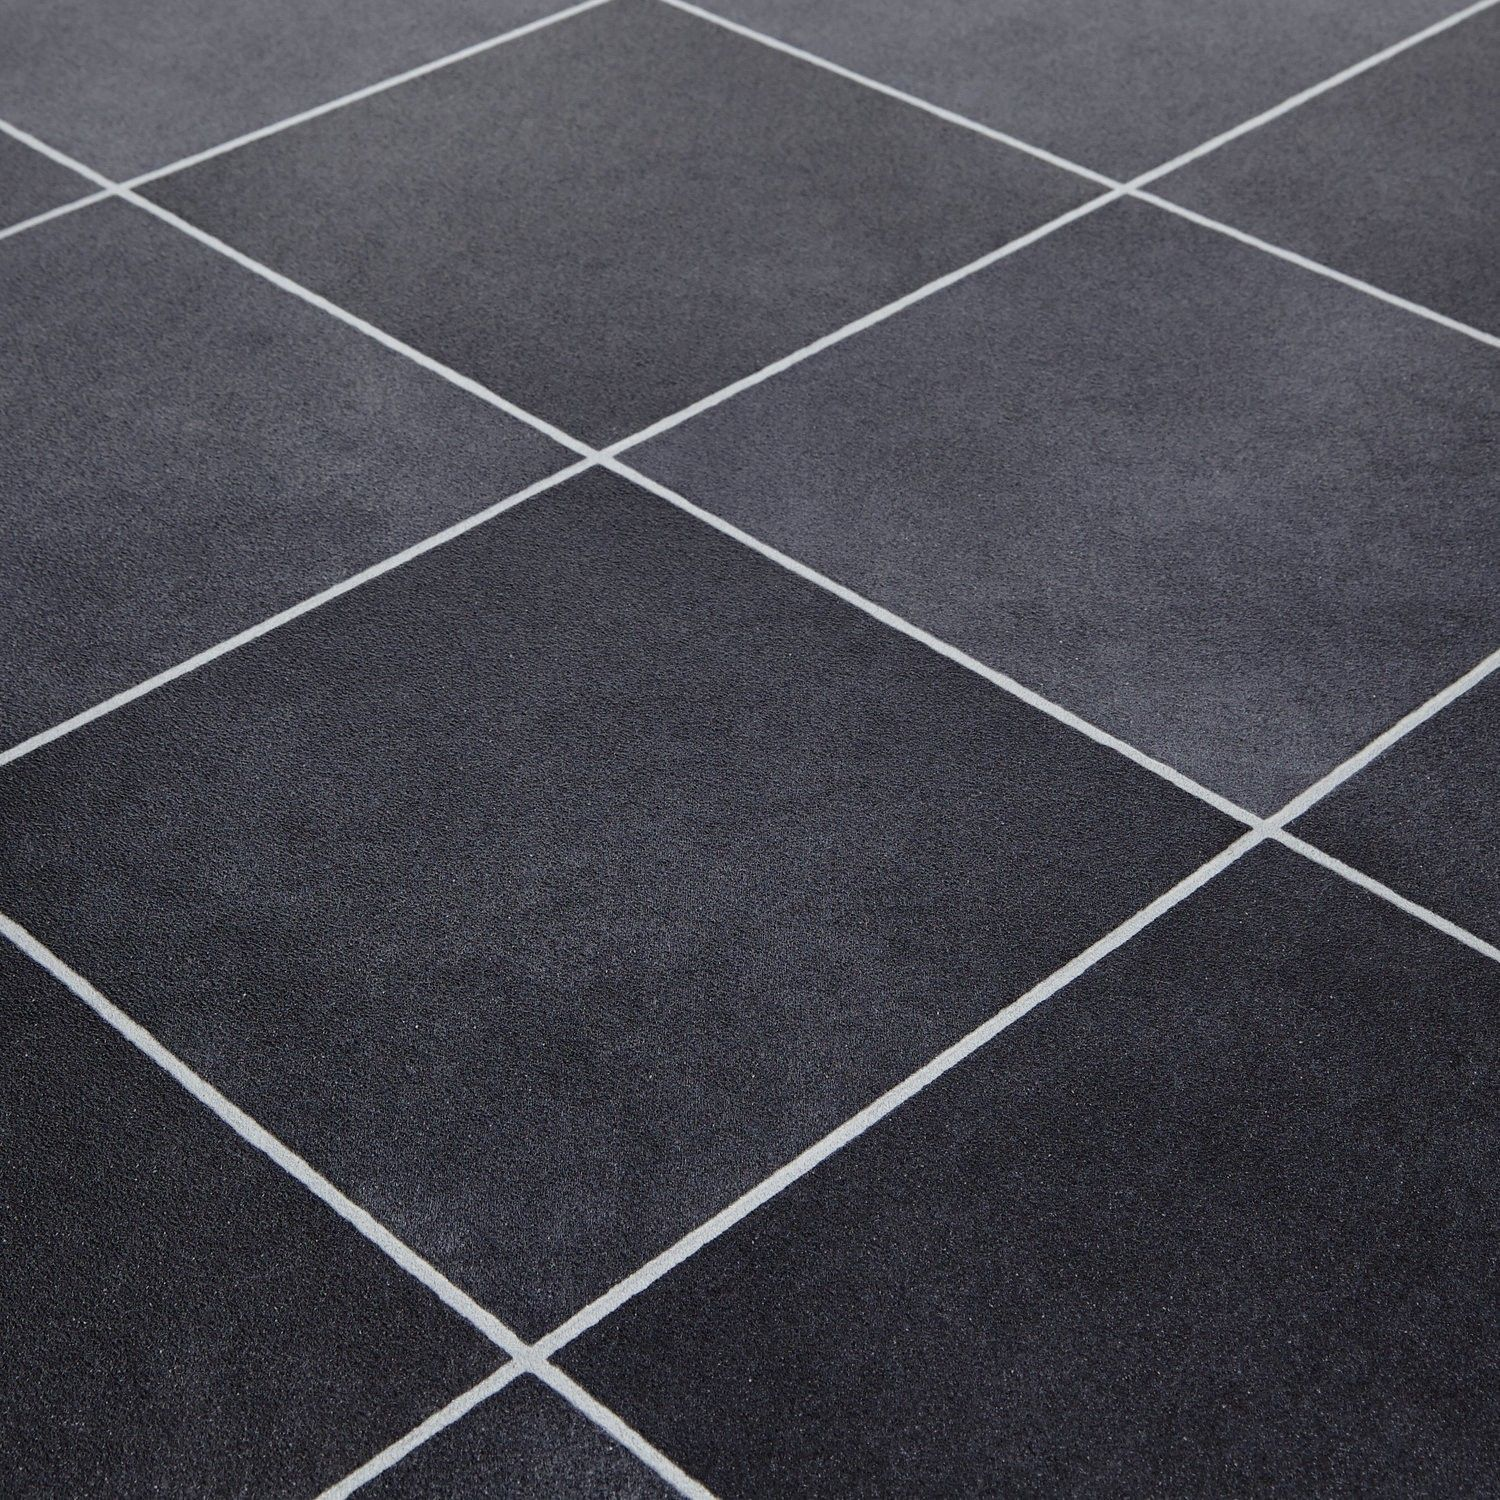 Bathroom floor vinyl tiles - Mardi Gras 598 Durango Black Stone Tile Vinyl Flooring